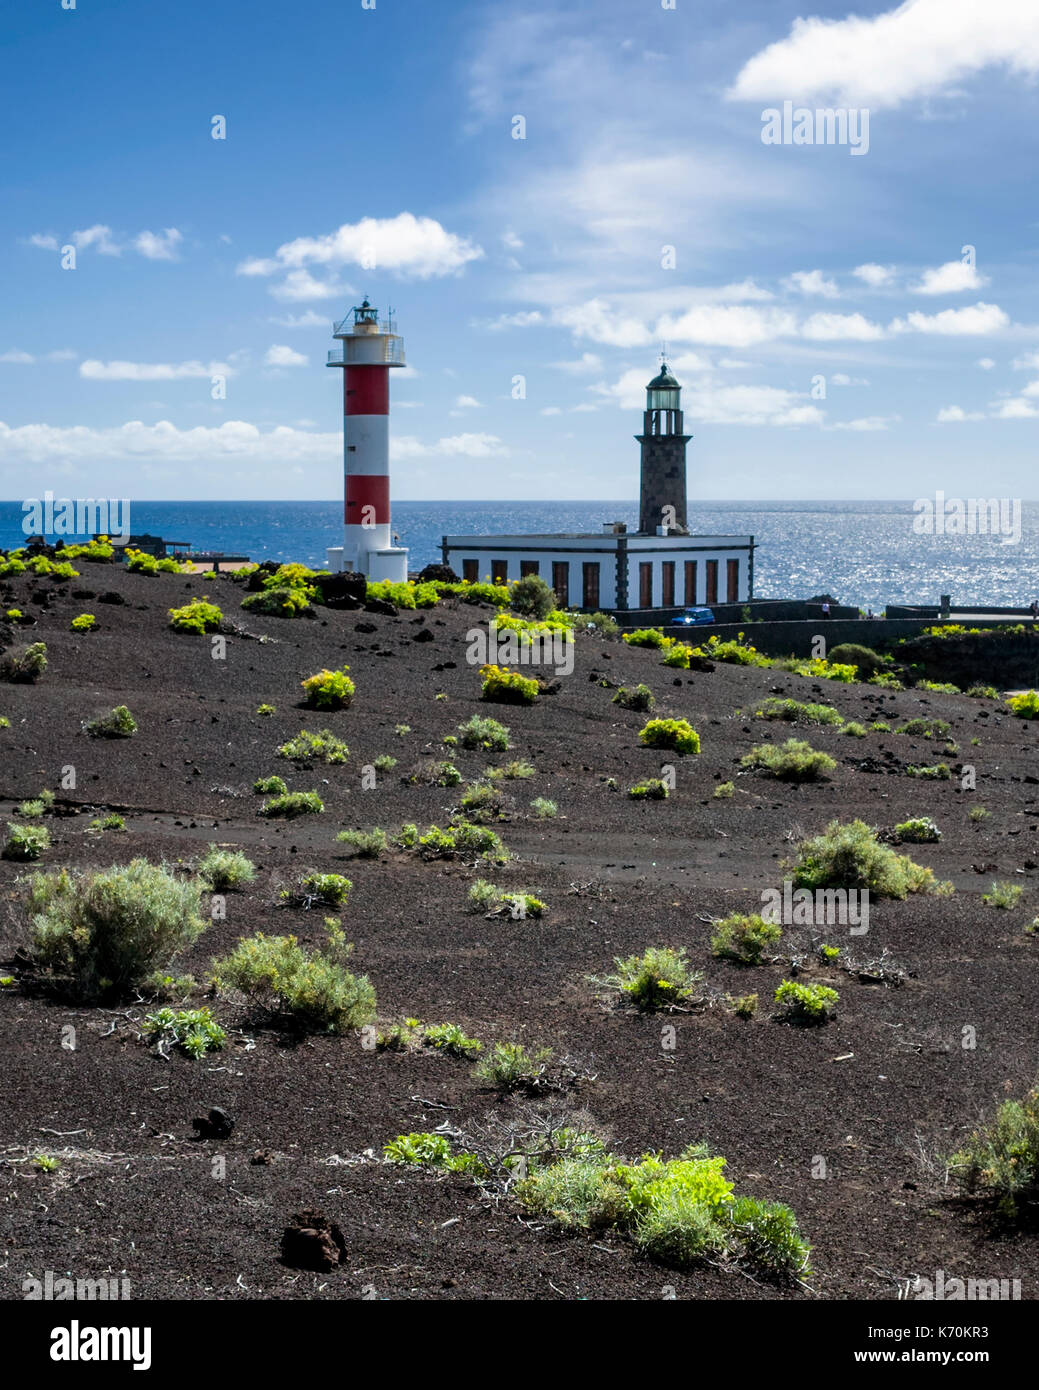 Fuencaliente, La Palma. Canary Islands Spain.  The Fuencaliente lighthouse is an active lighthouse on the island of La Palma in the Canary Islands. It is the second lighthouse to be built at this site, which marks the southern end of the island.    The old original lighthouse can be seen in the background.  The visitor centre was built to promote and educate people about the marine environment.  Photographed with a Ricoh GRII camera. - Stock Image